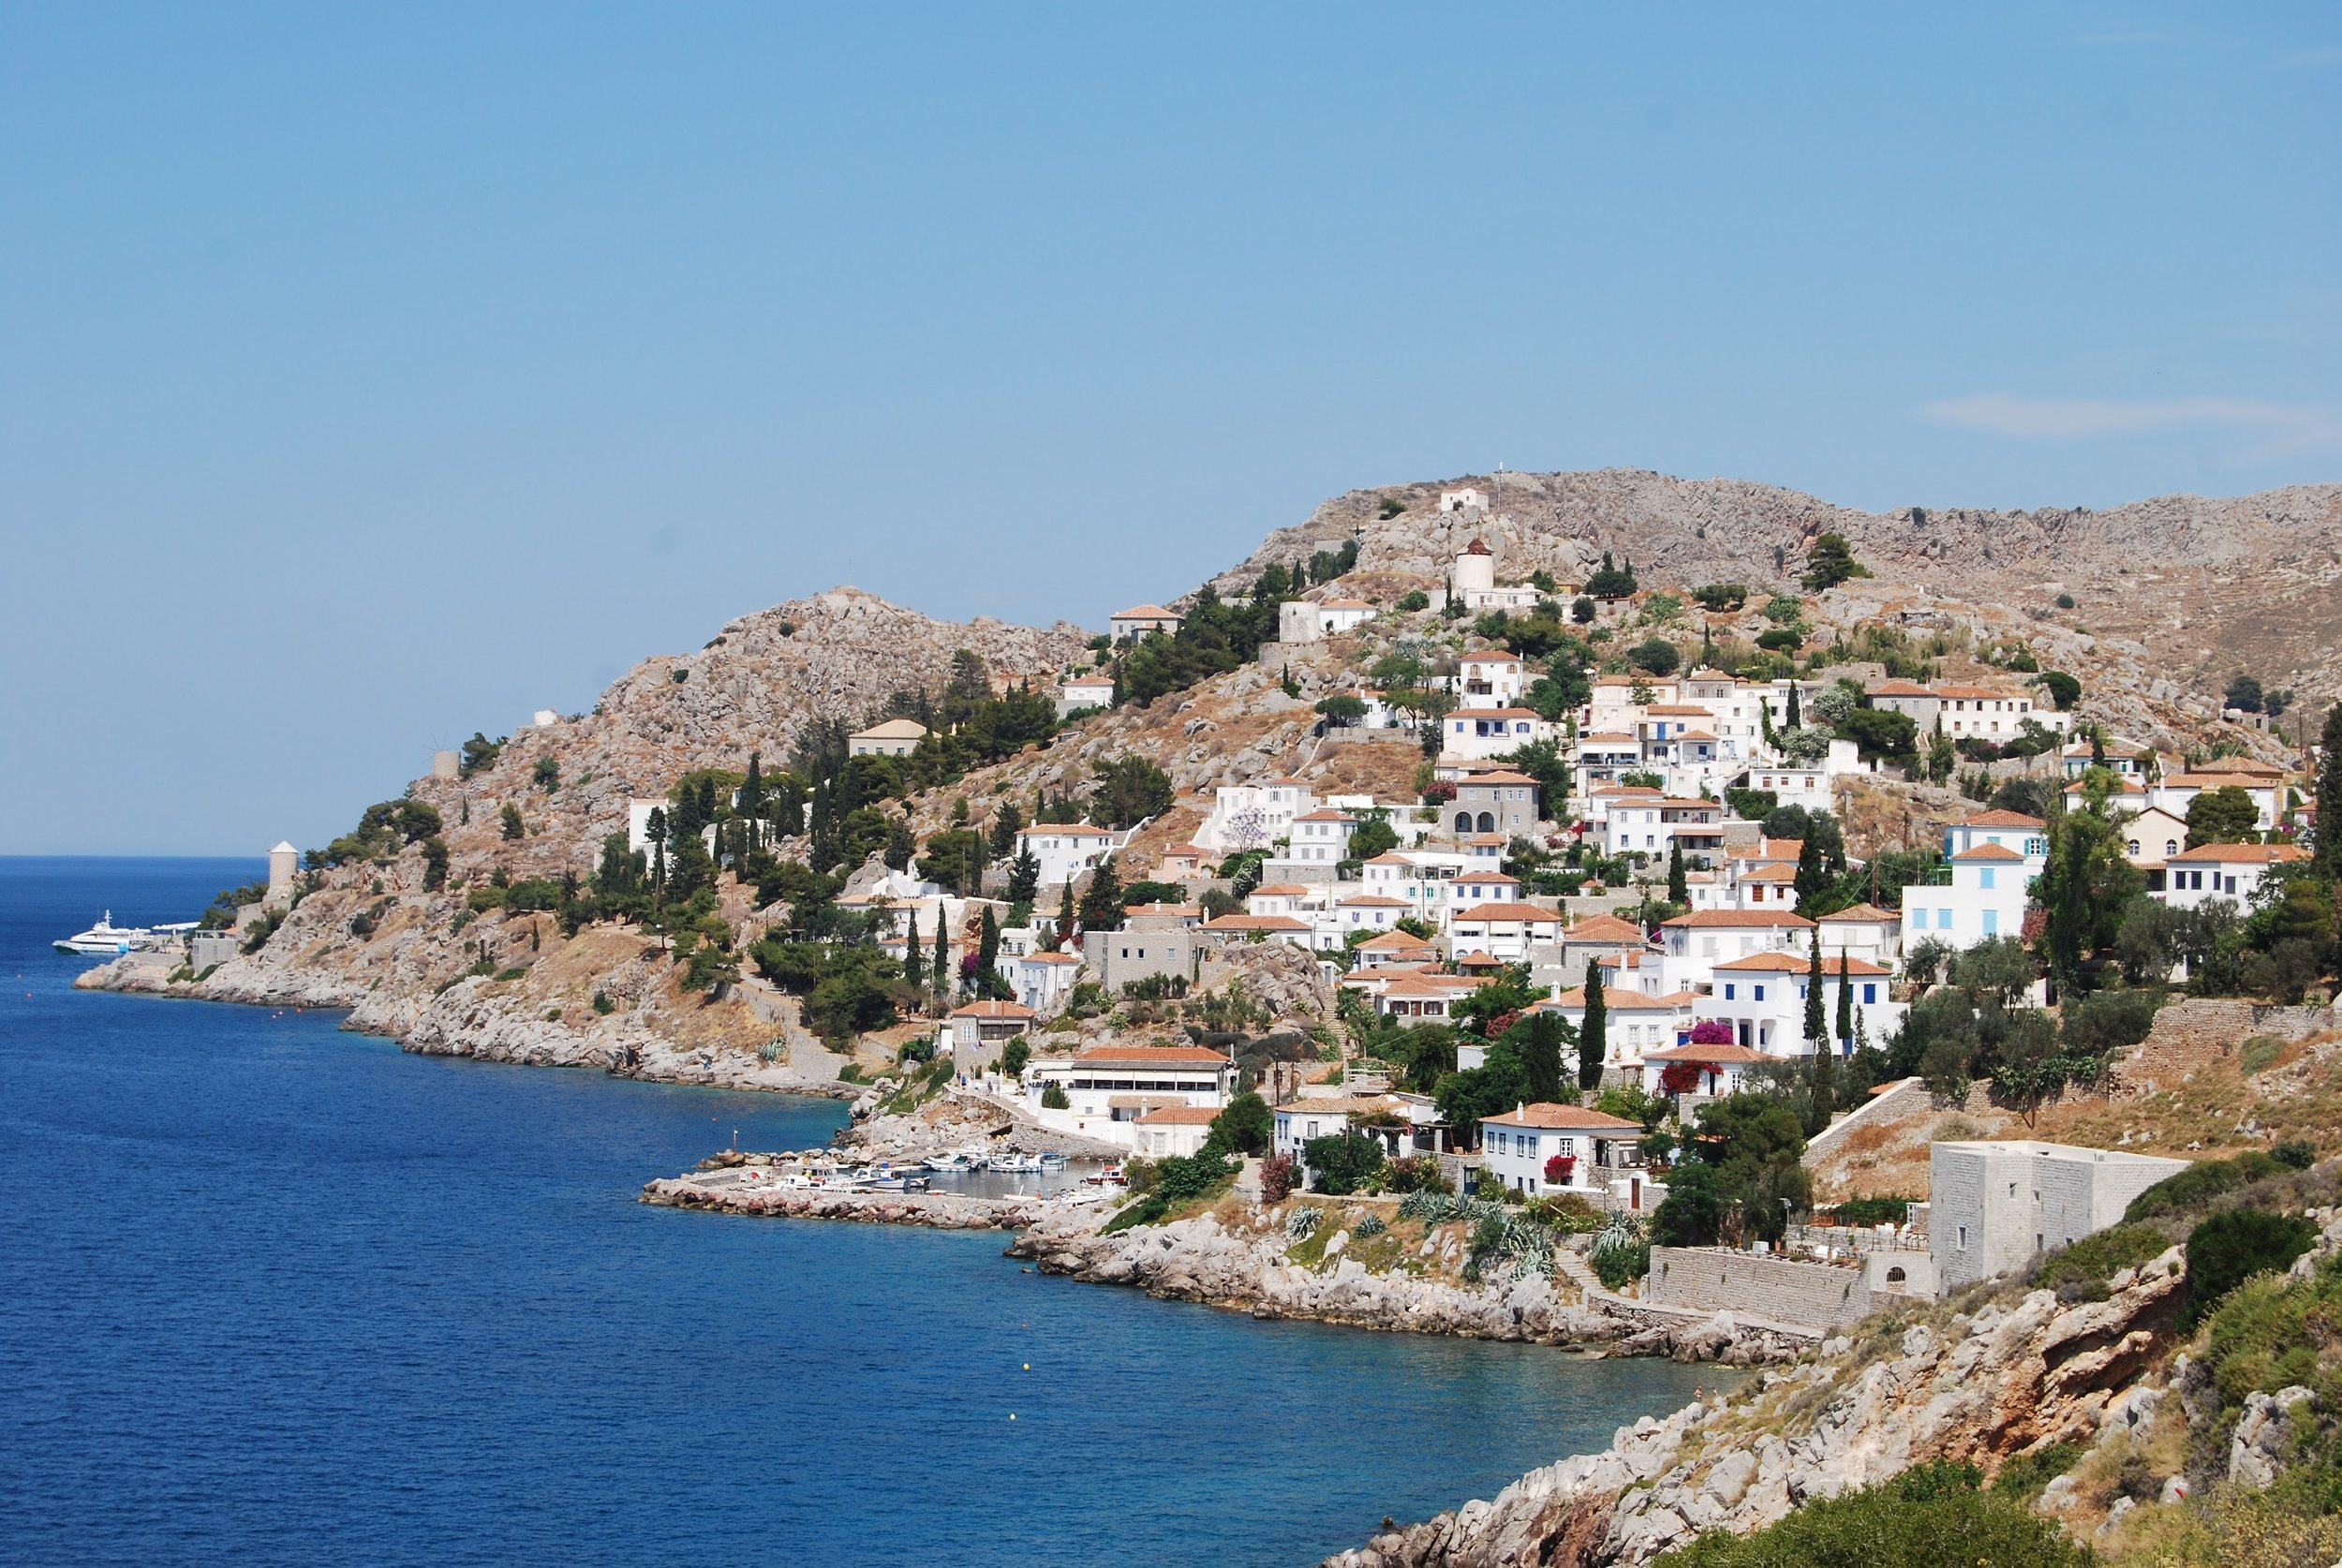 Hydra. There are no cars on this island so it is a walker's paradise.